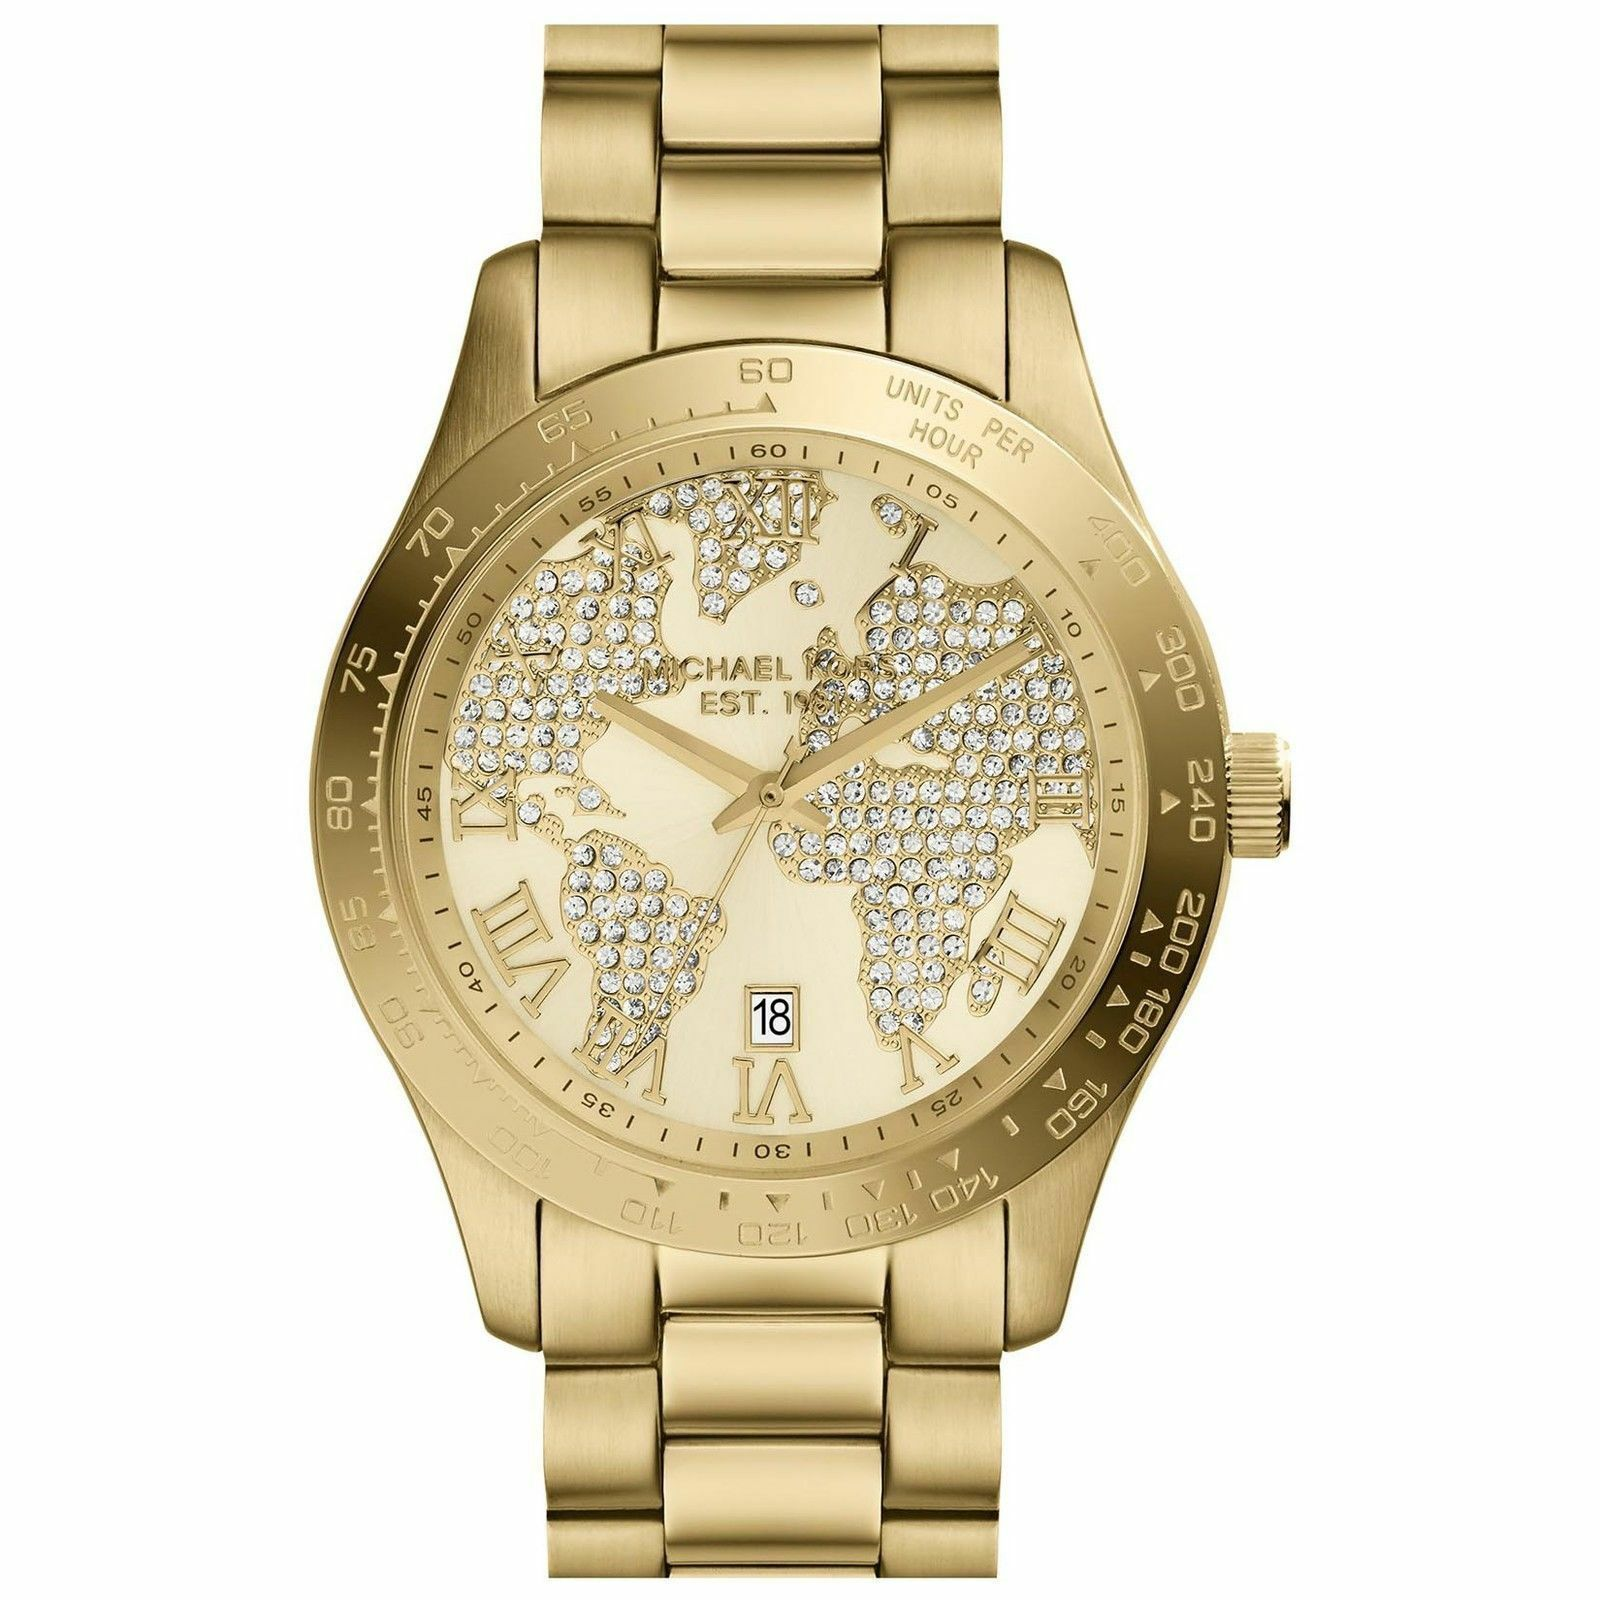 Michael kors layton mk5959 wrist watch for women ebay resntentobalflowflowcomponenttechnicalissues gumiabroncs Choice Image